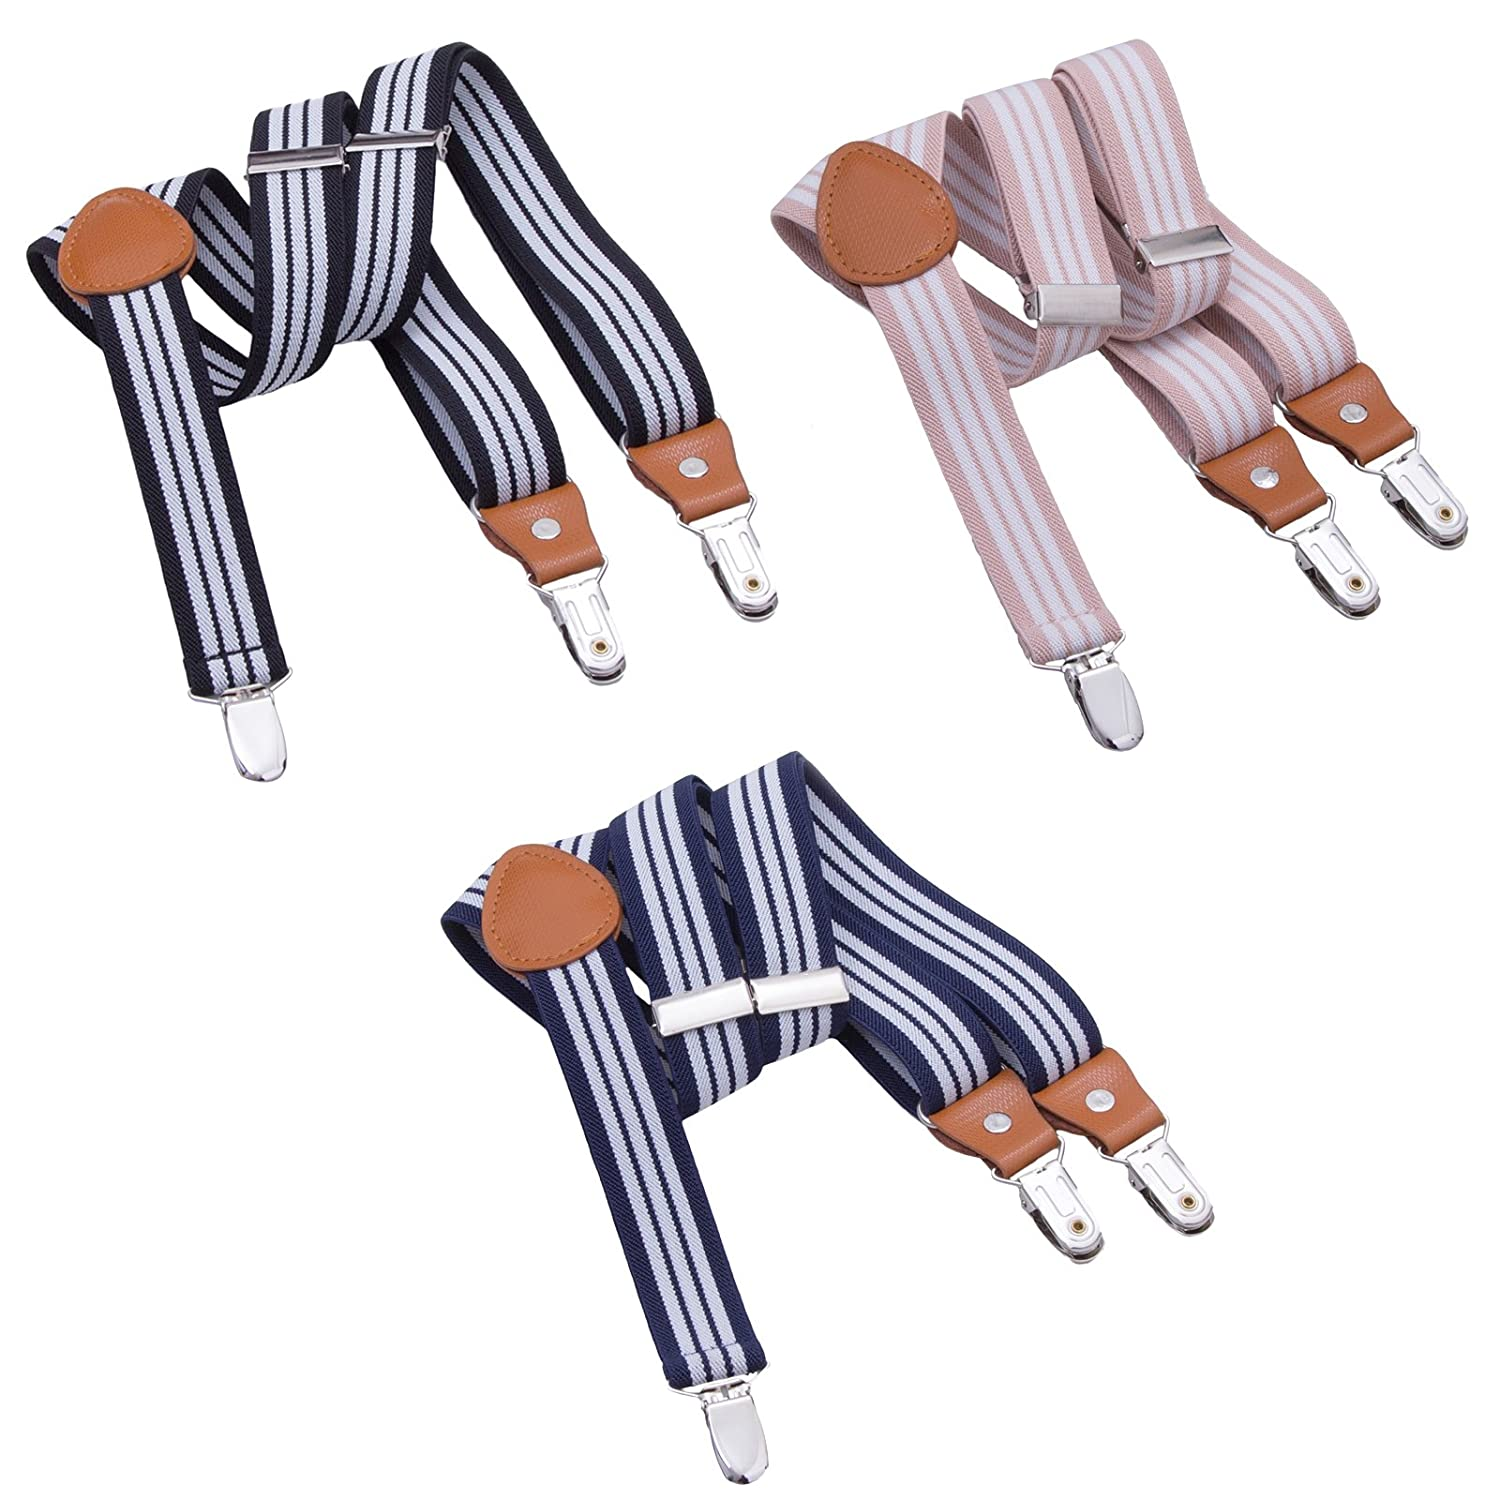 3PCS Kids Boys Mens Suspenders Sets - Adjustable Elastic Y Back Strong Clips Synthetic Leather Suspender (Navy Blue/Coffee/Grey, 23.6 Inch (7 Months - 3 Years)) Jerrybaby